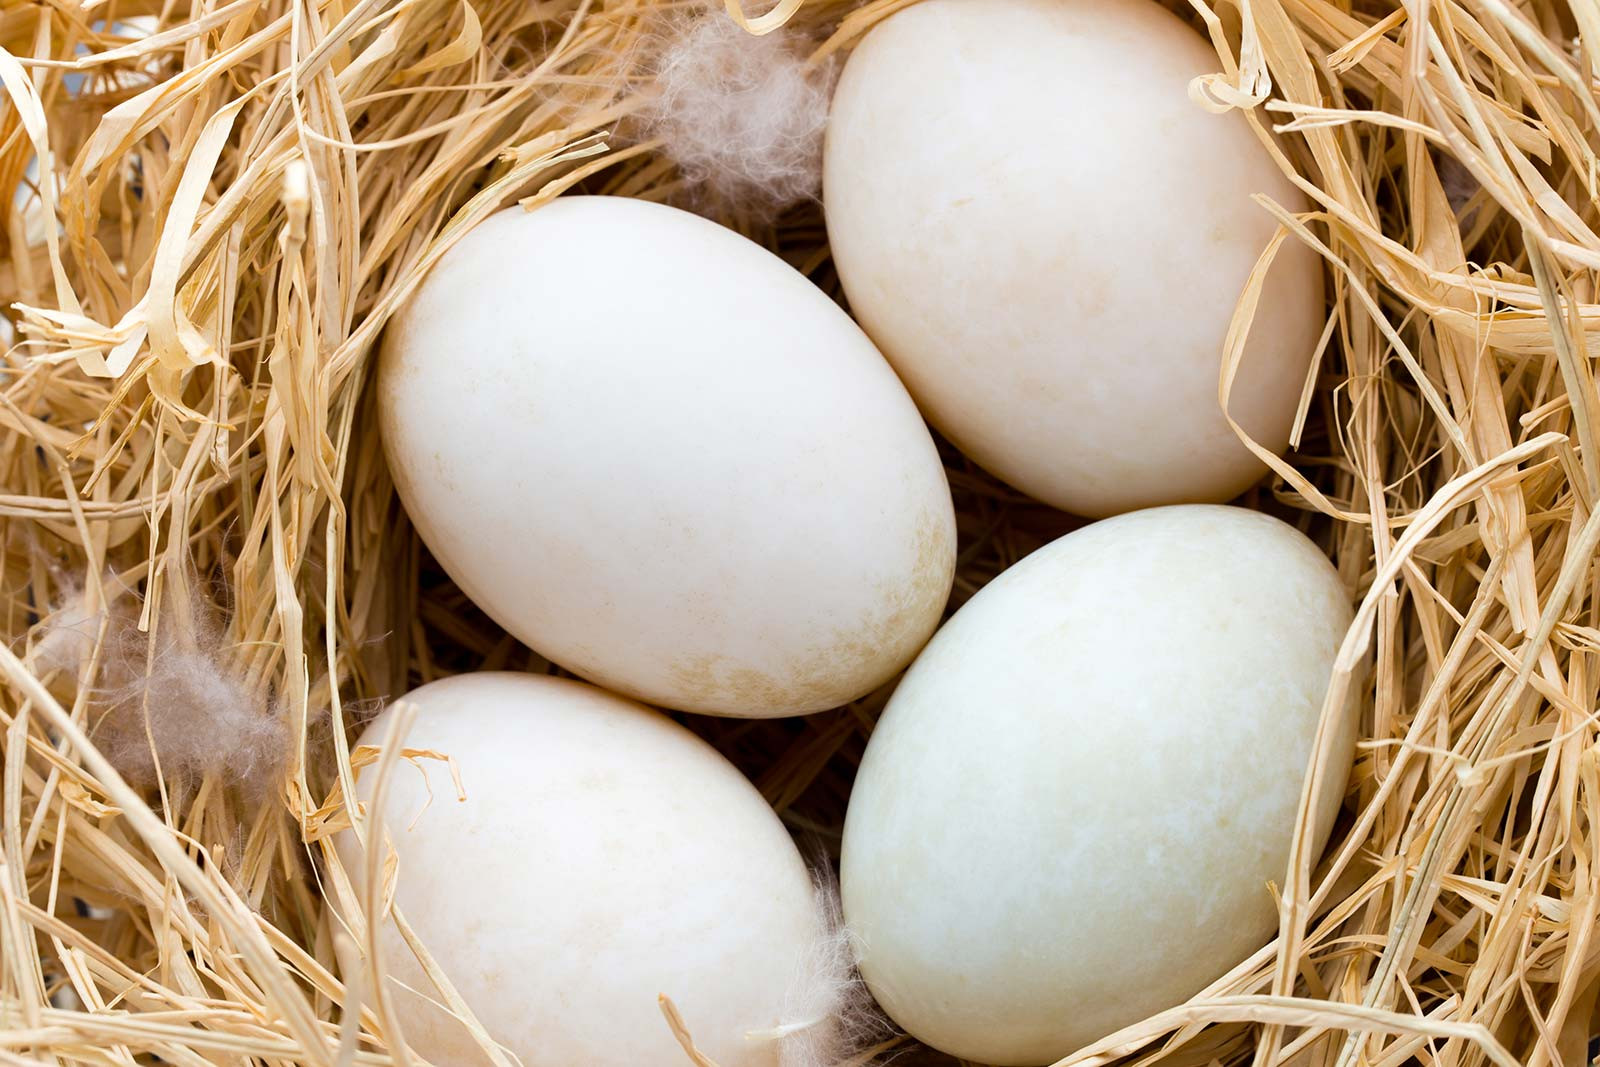 What's not to love about pastured duck eggs?